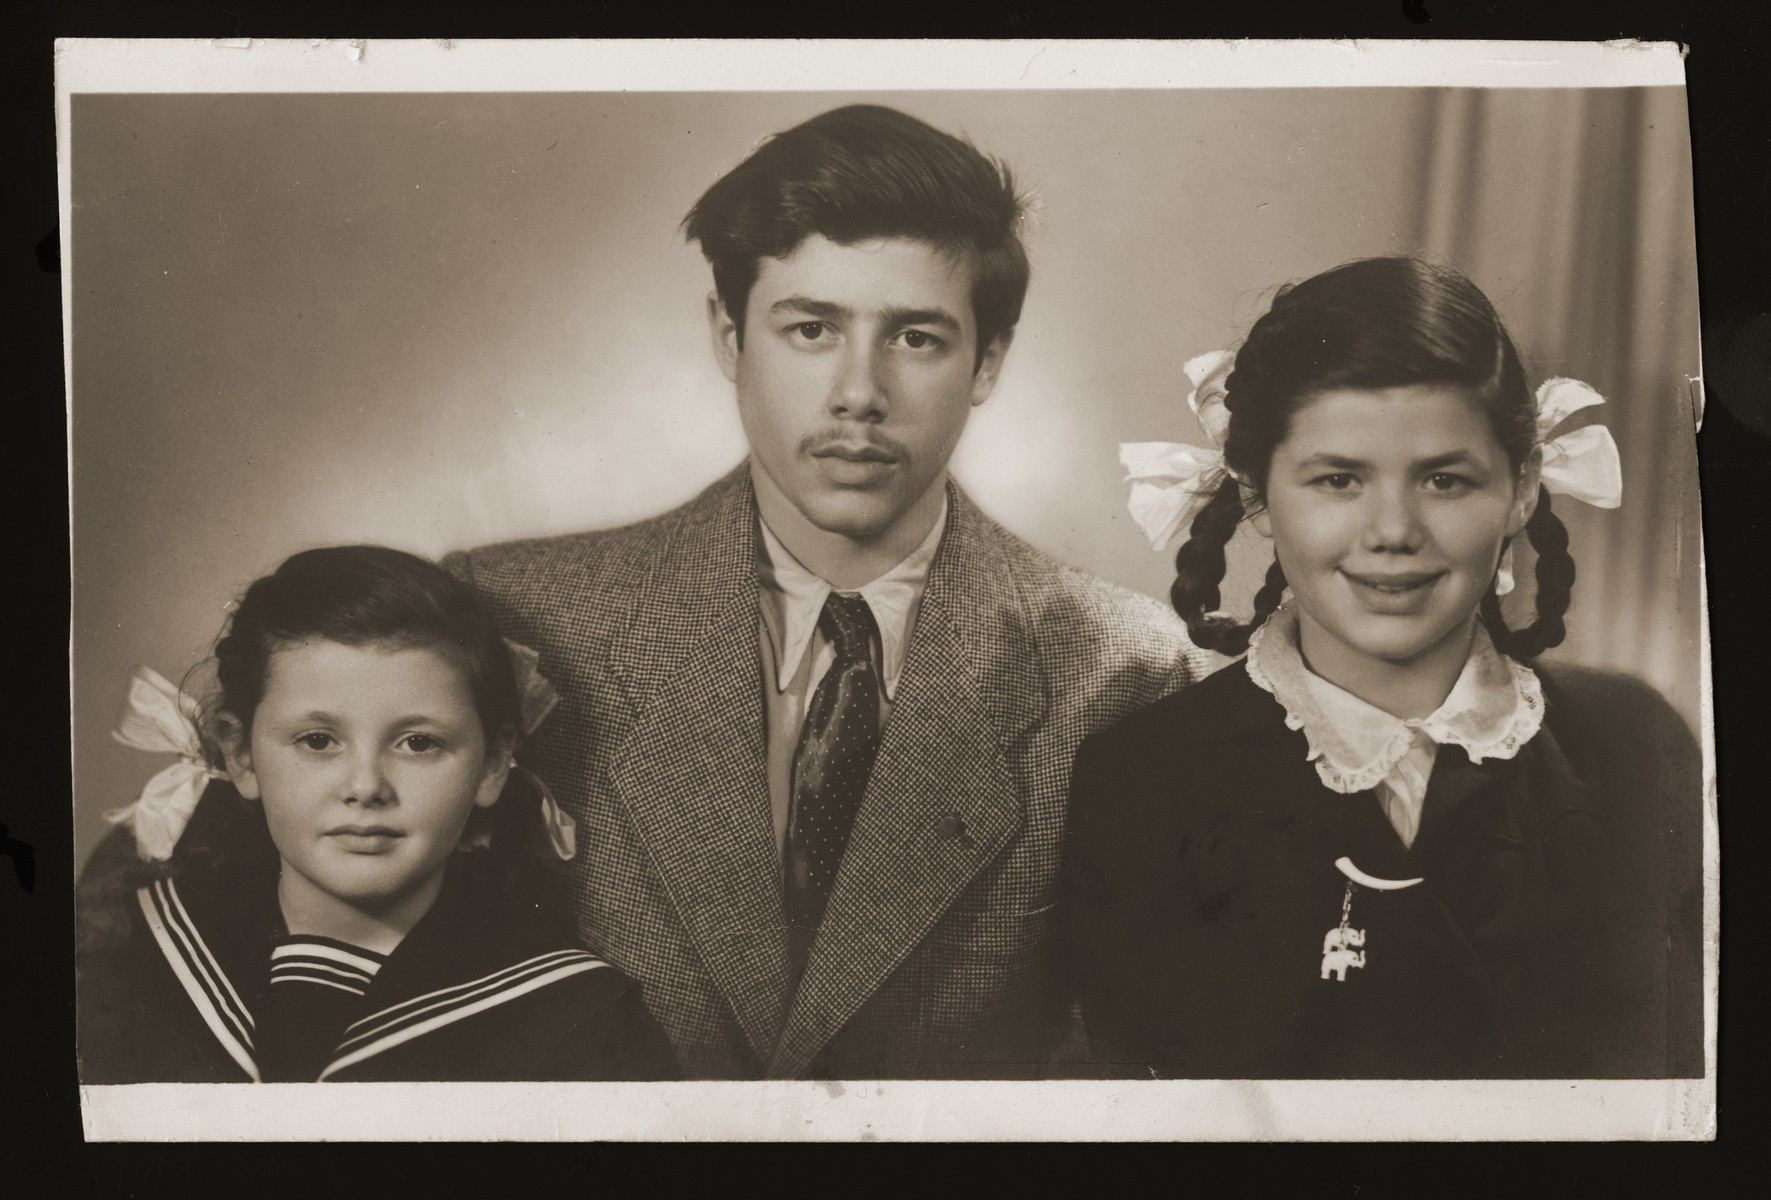 Studio portrait of three Belgian Jewish siblings who survived the war in France.    Pictured from left to right are: Josephina, Andre, and Lucie Zalc.